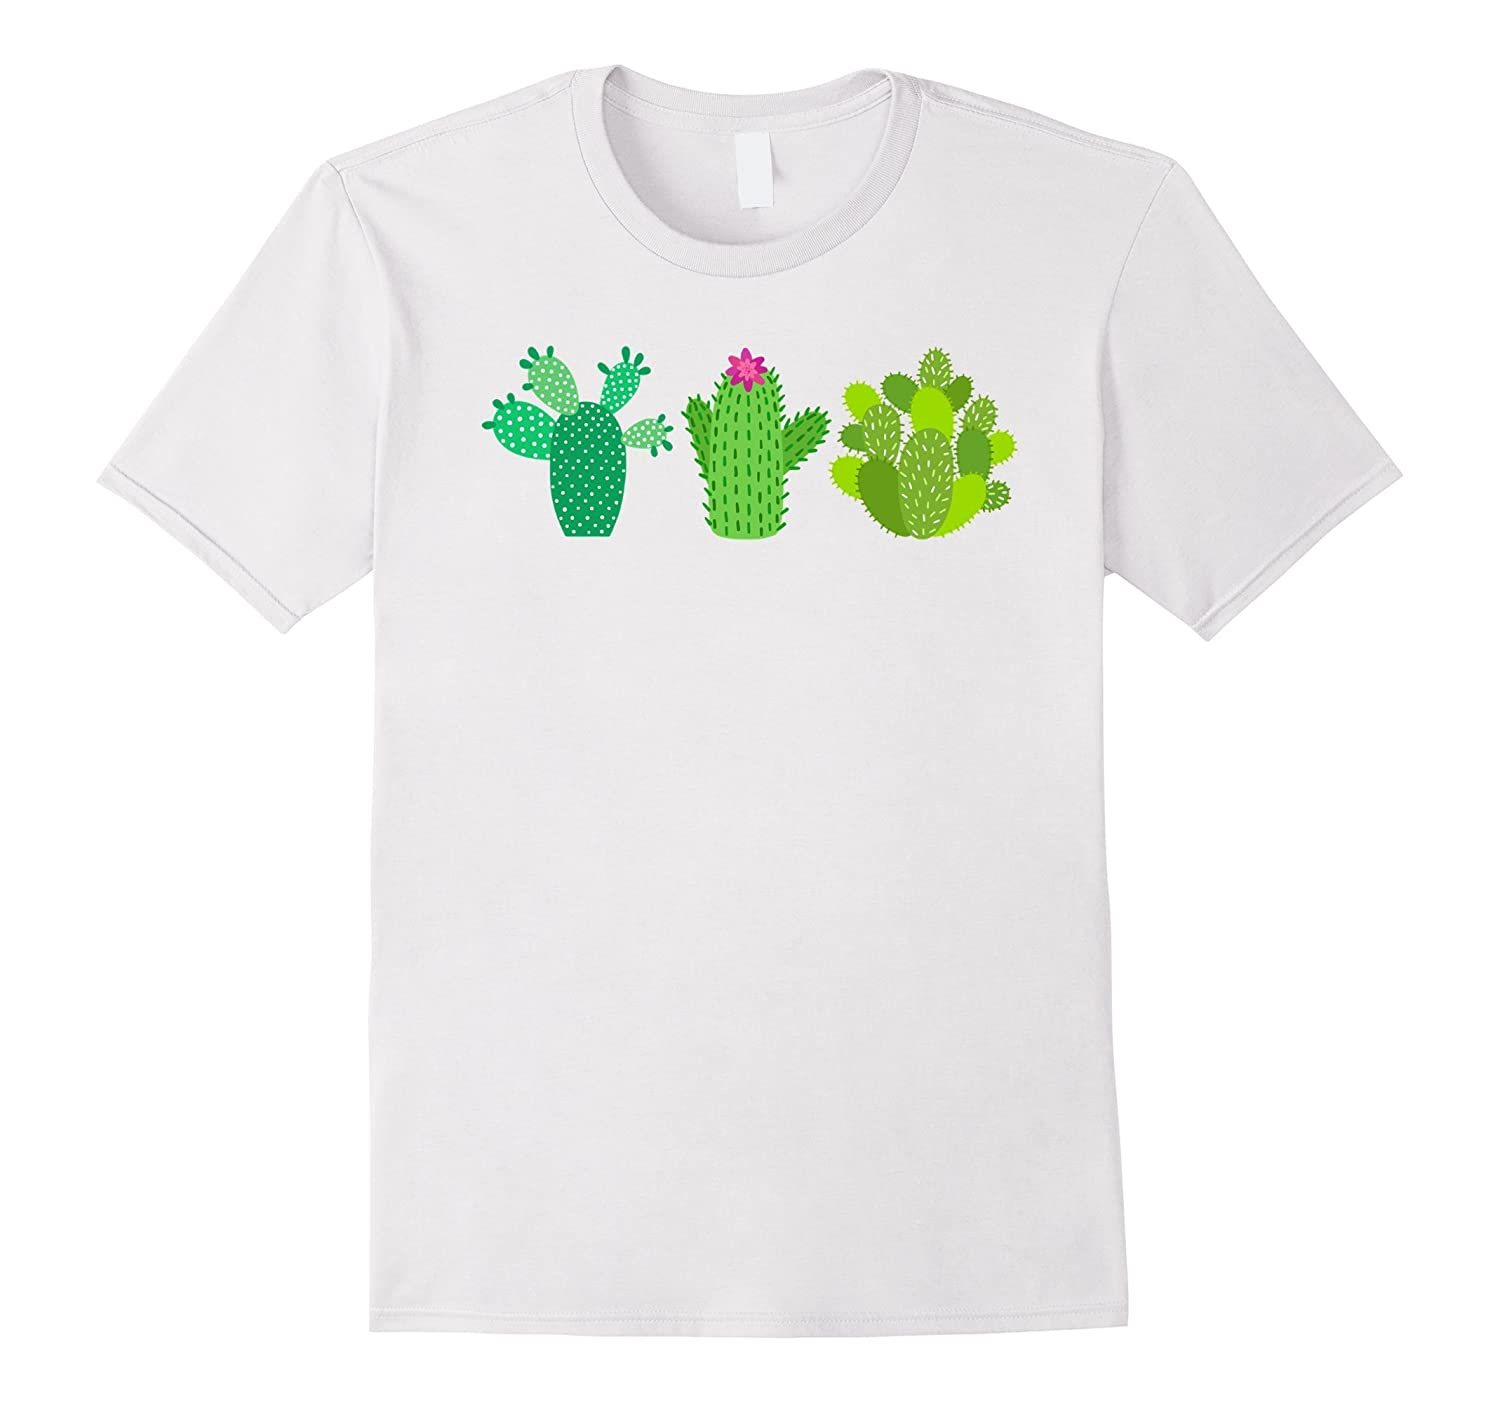 3 Cactus Plants with Flower Graphic T-Shirt-Rose